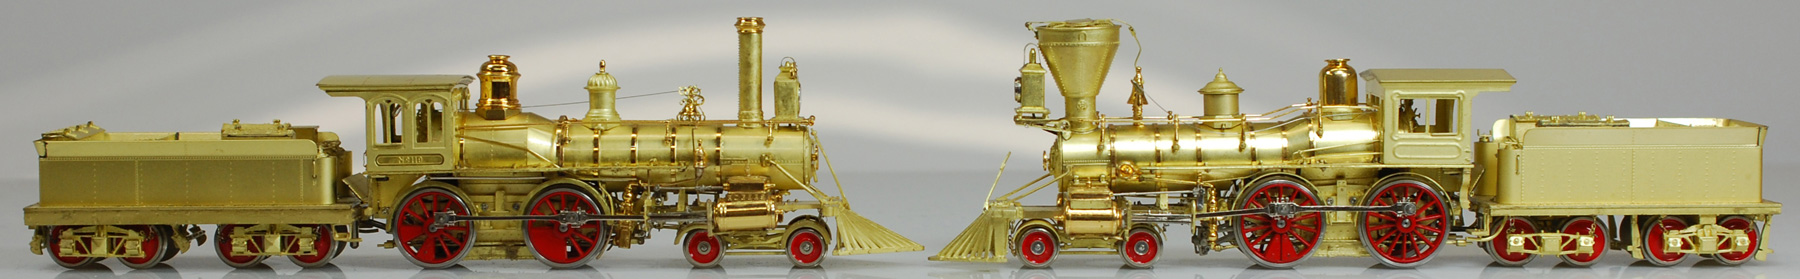 Brass Train Models